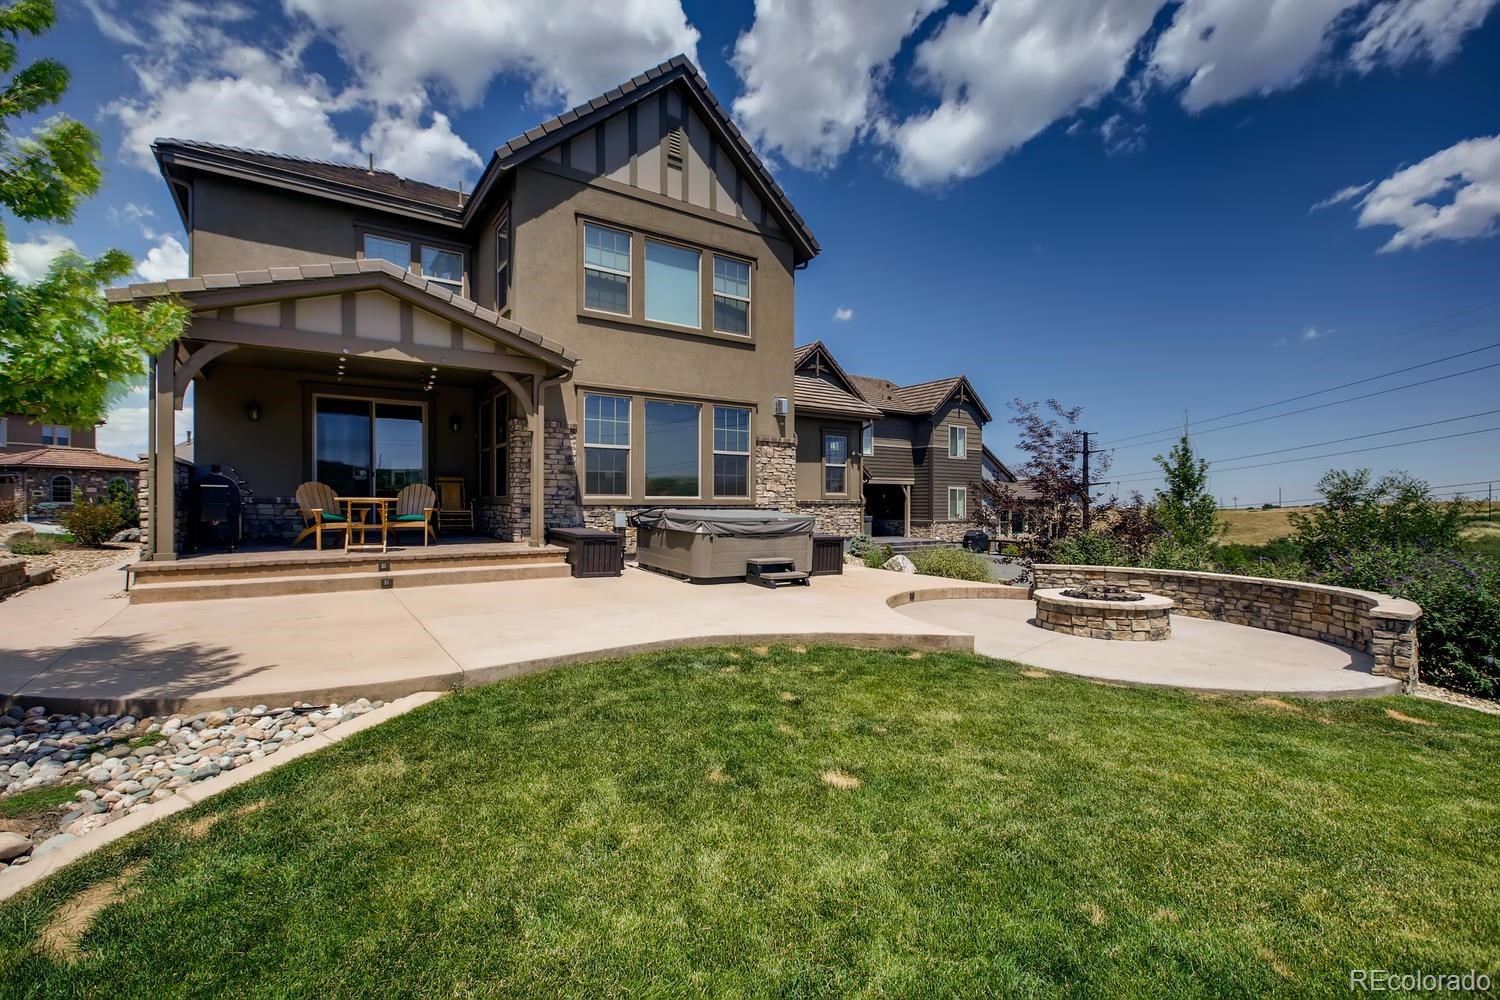 MLS# 5689224 - 27 - 10754 Greycliffe Drive, Highlands Ranch, CO 80126